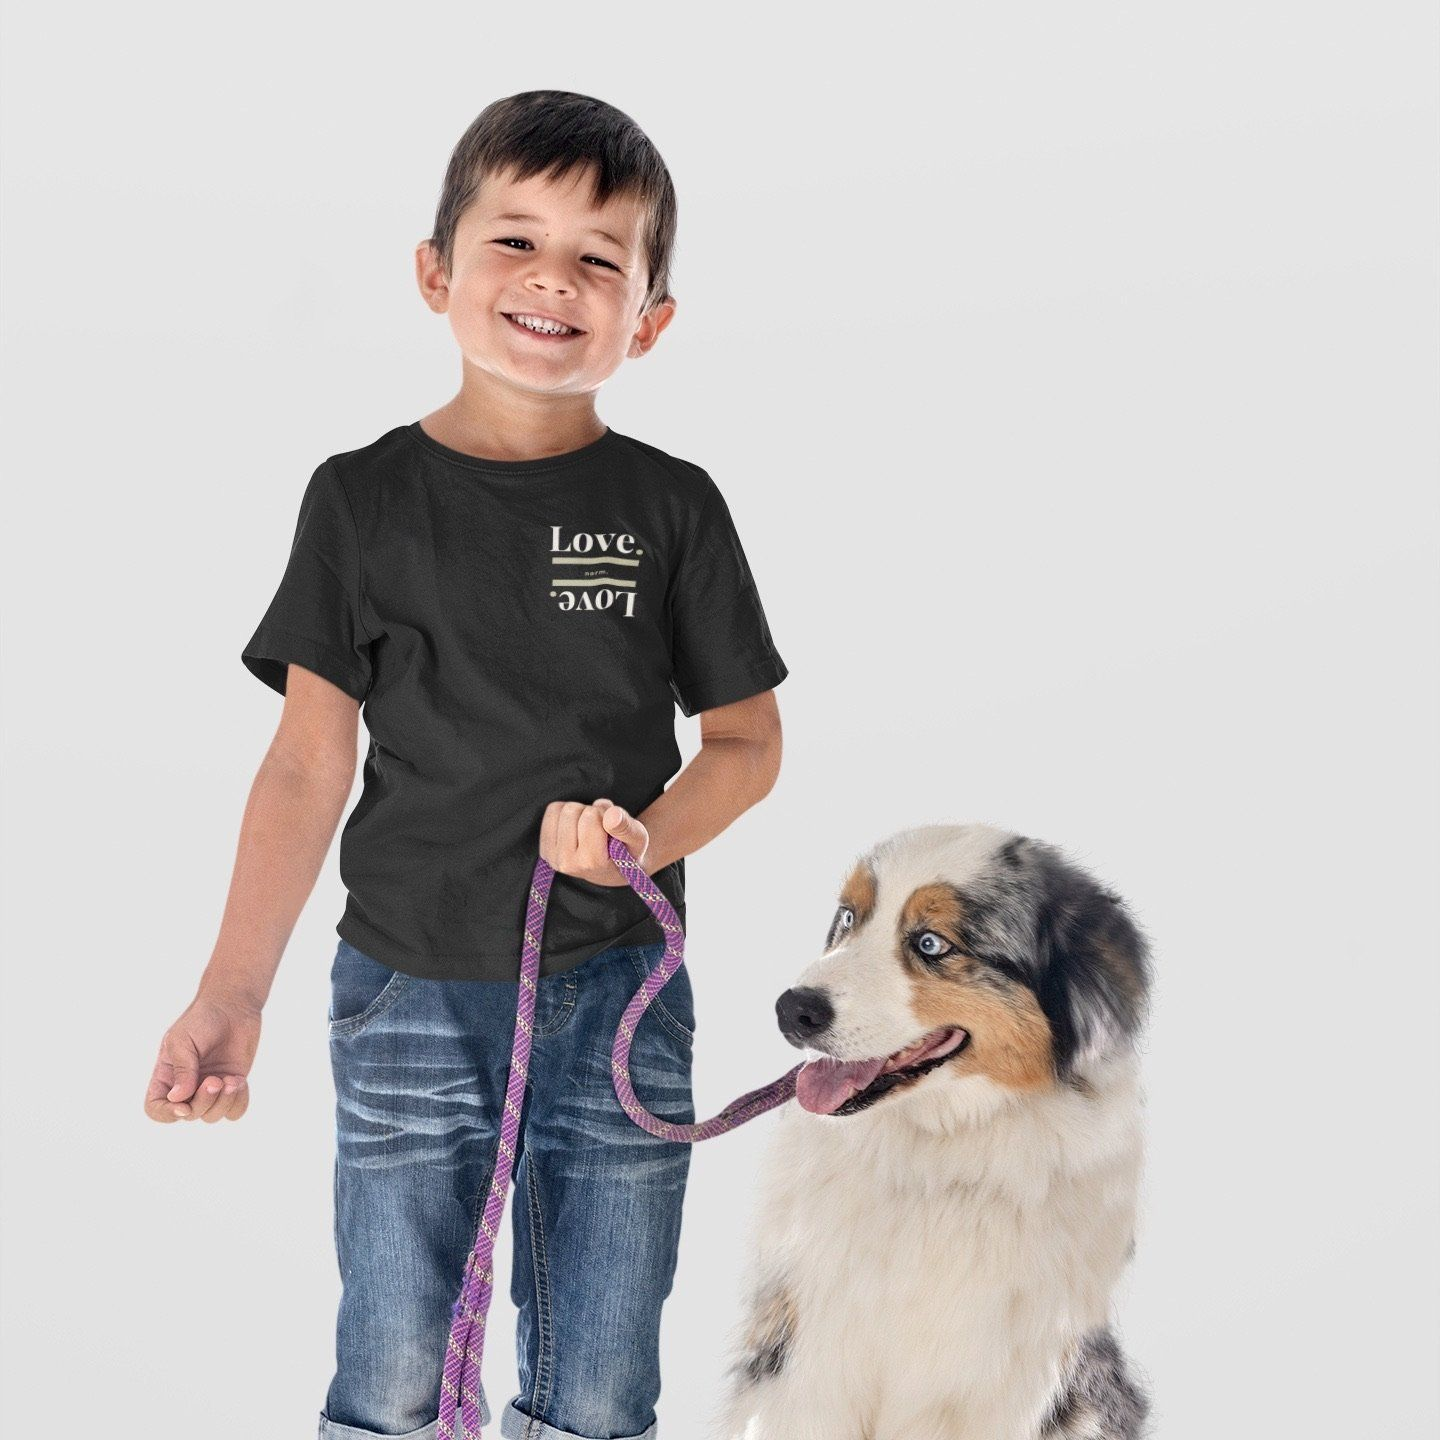 Sawyer toddler tee. norm.